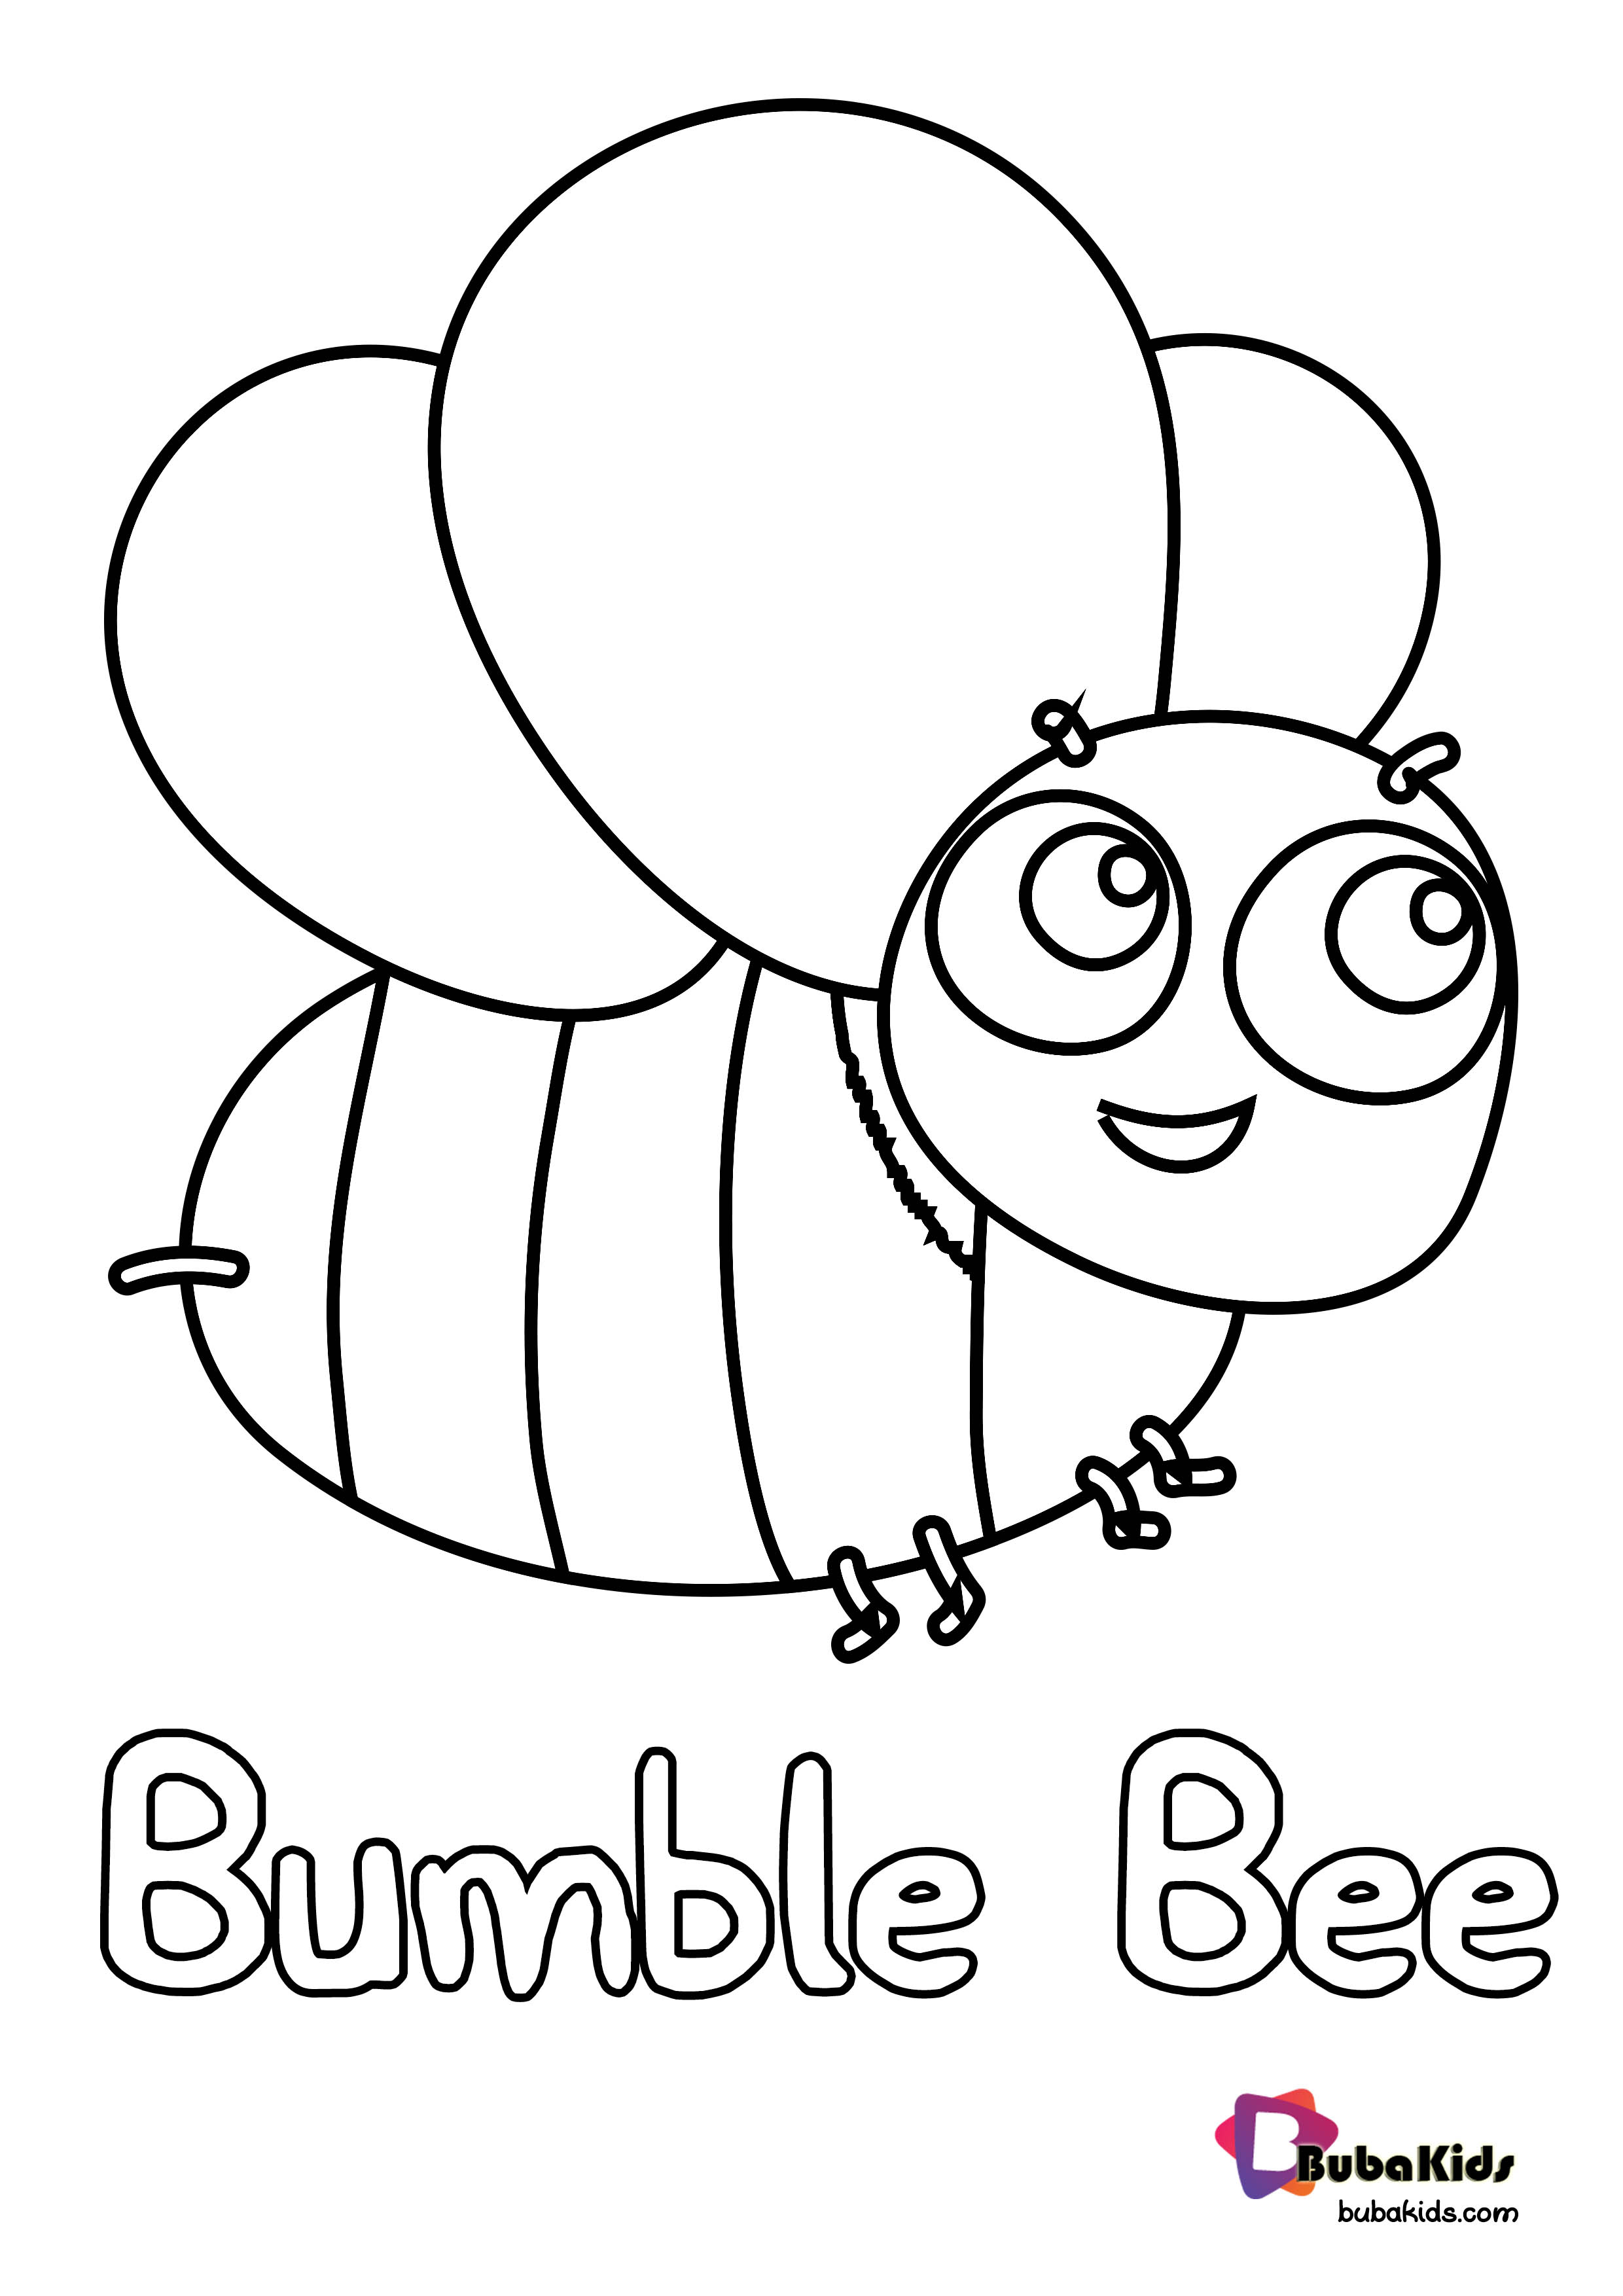 bumble bee coloring page free printable bumble bee coloring pages for kids bee bumble coloring page